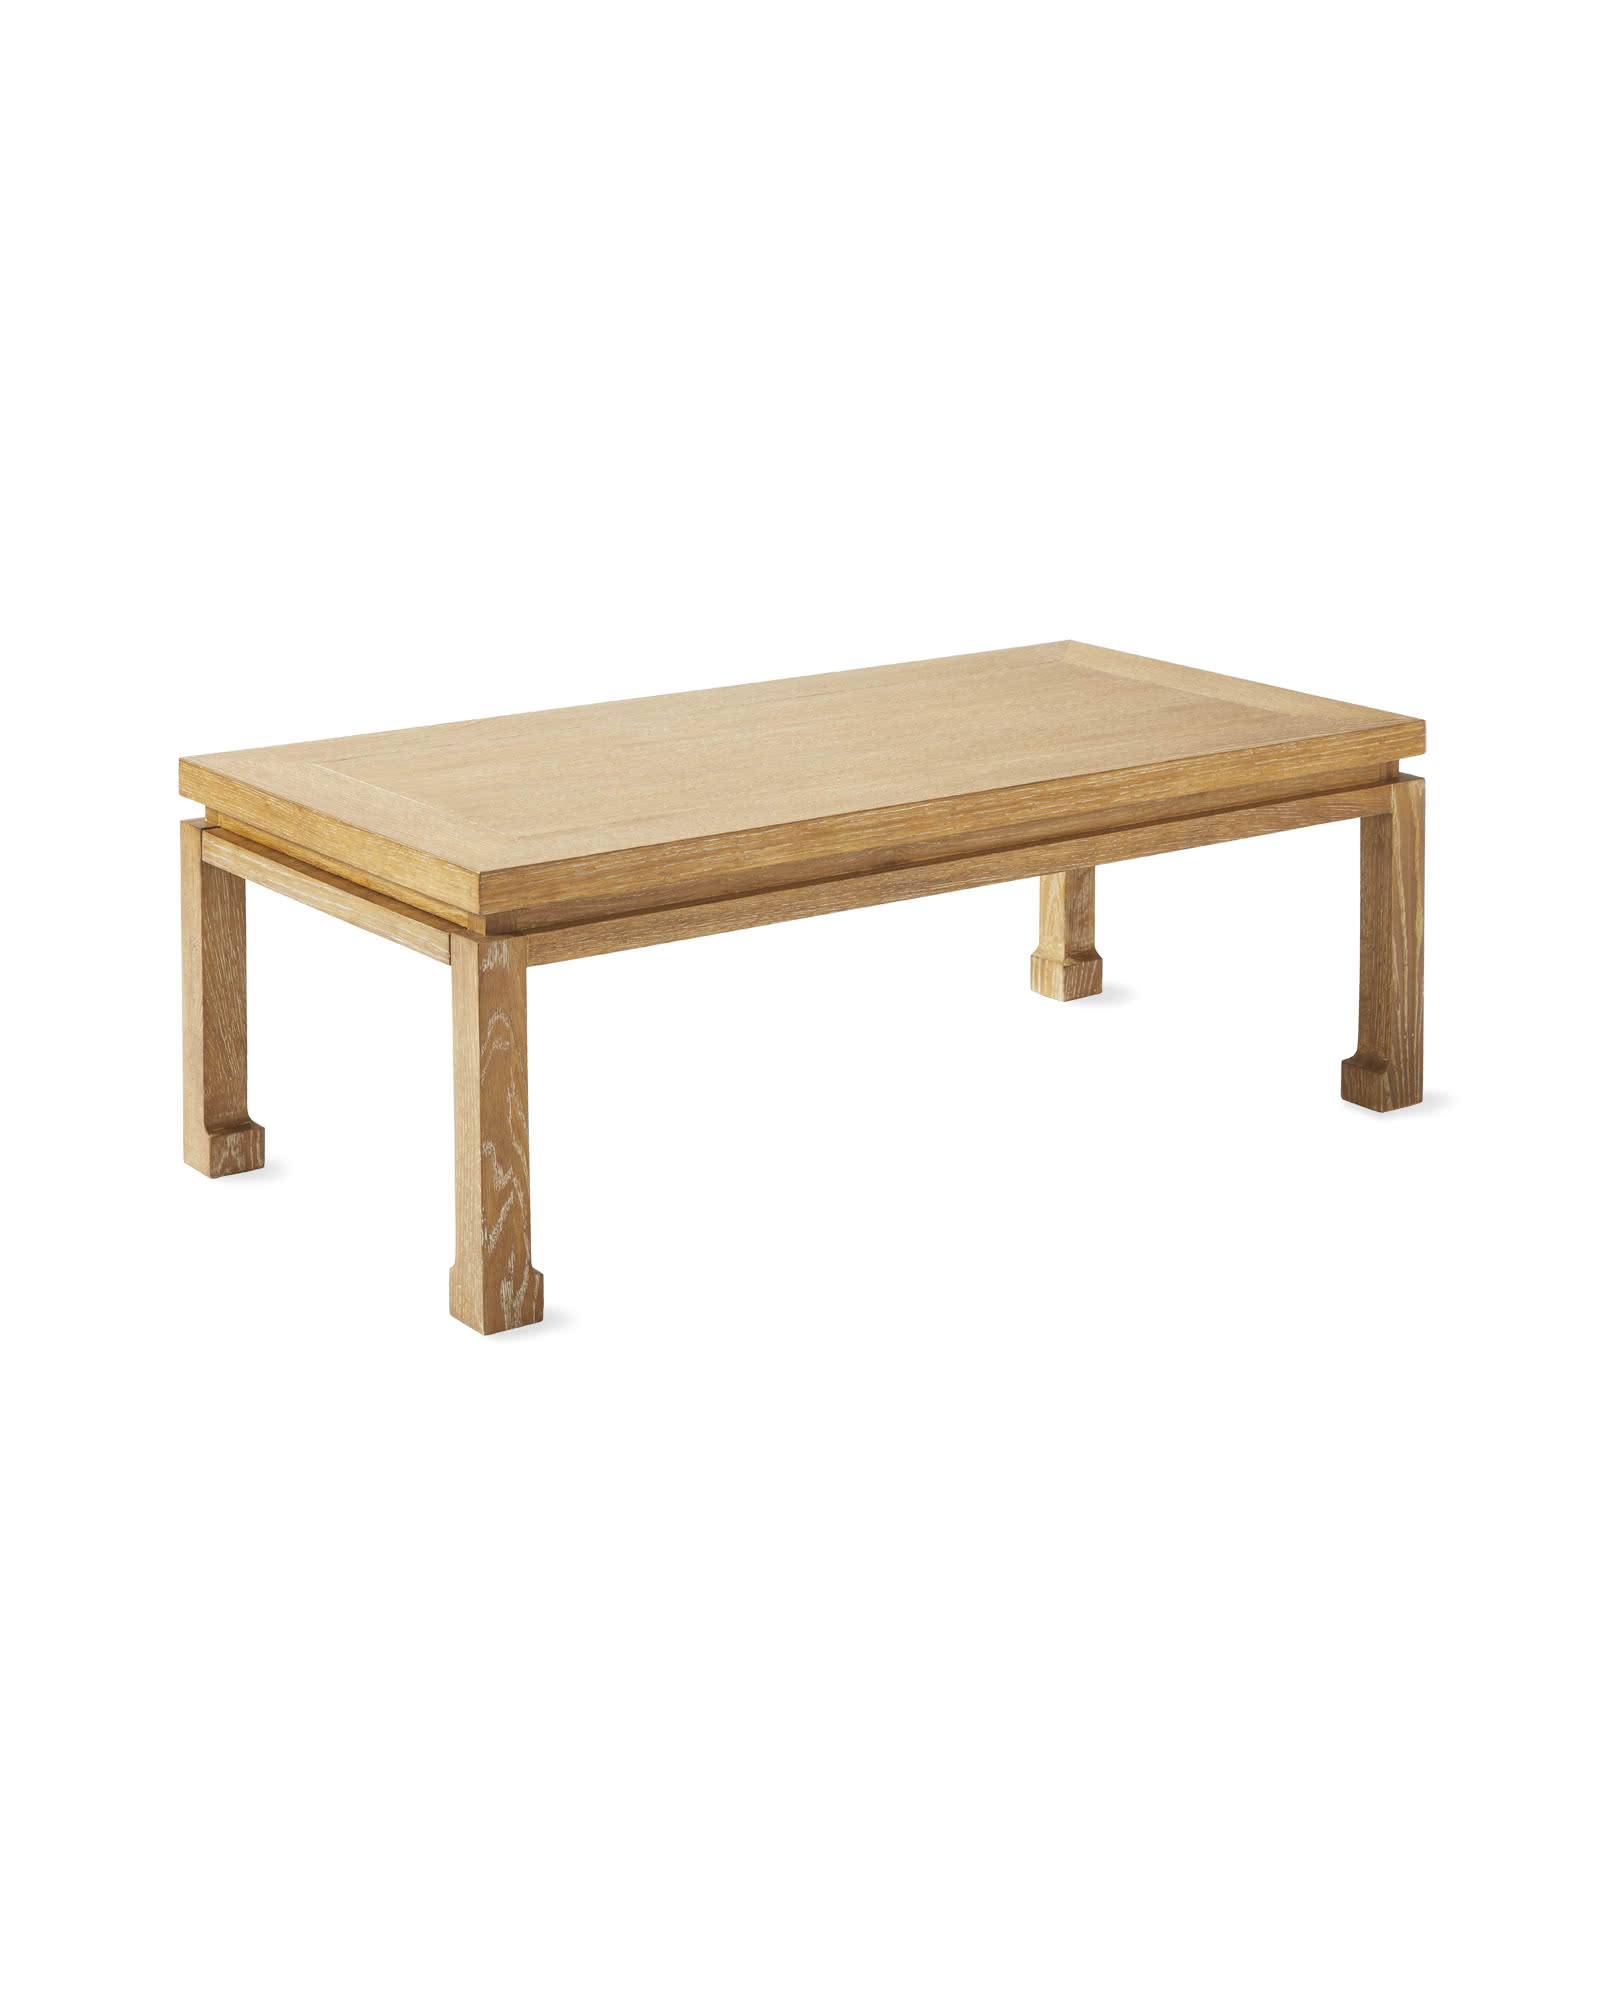 Small Reese Coffee Table, Cerused Oak